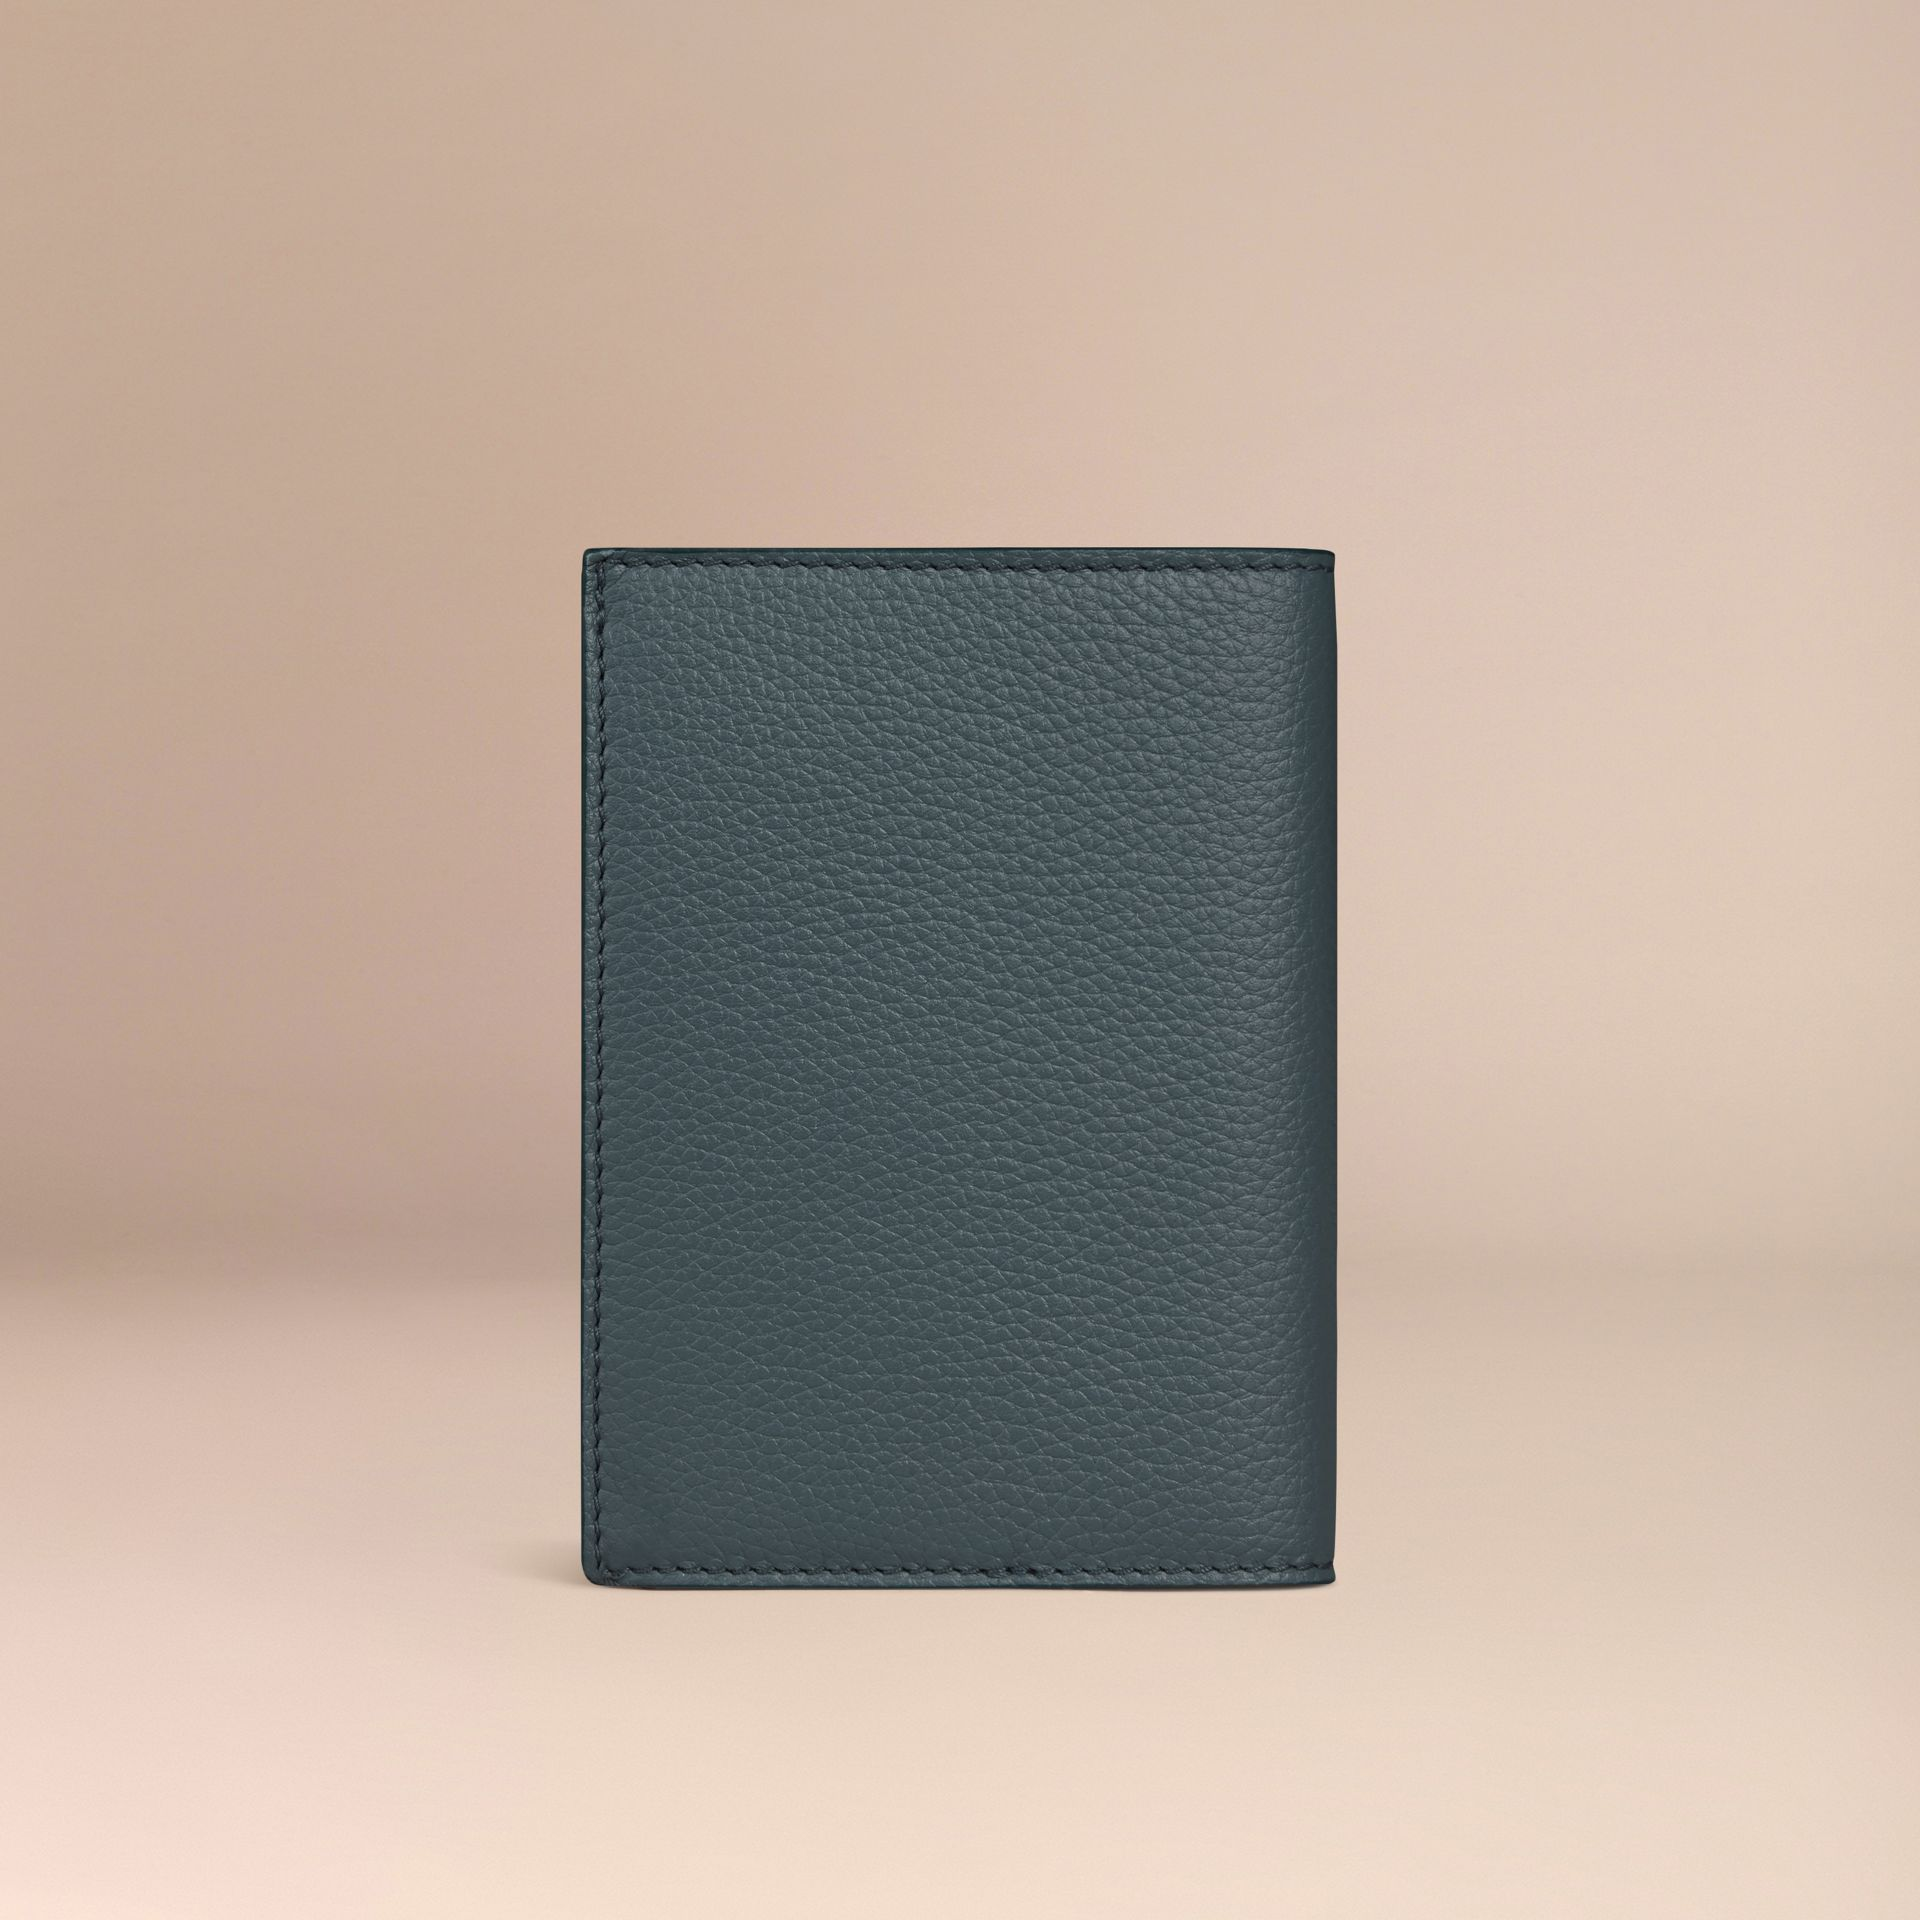 Grainy Leather Passport Cover in Dusty Teal | Burberry - gallery image 3